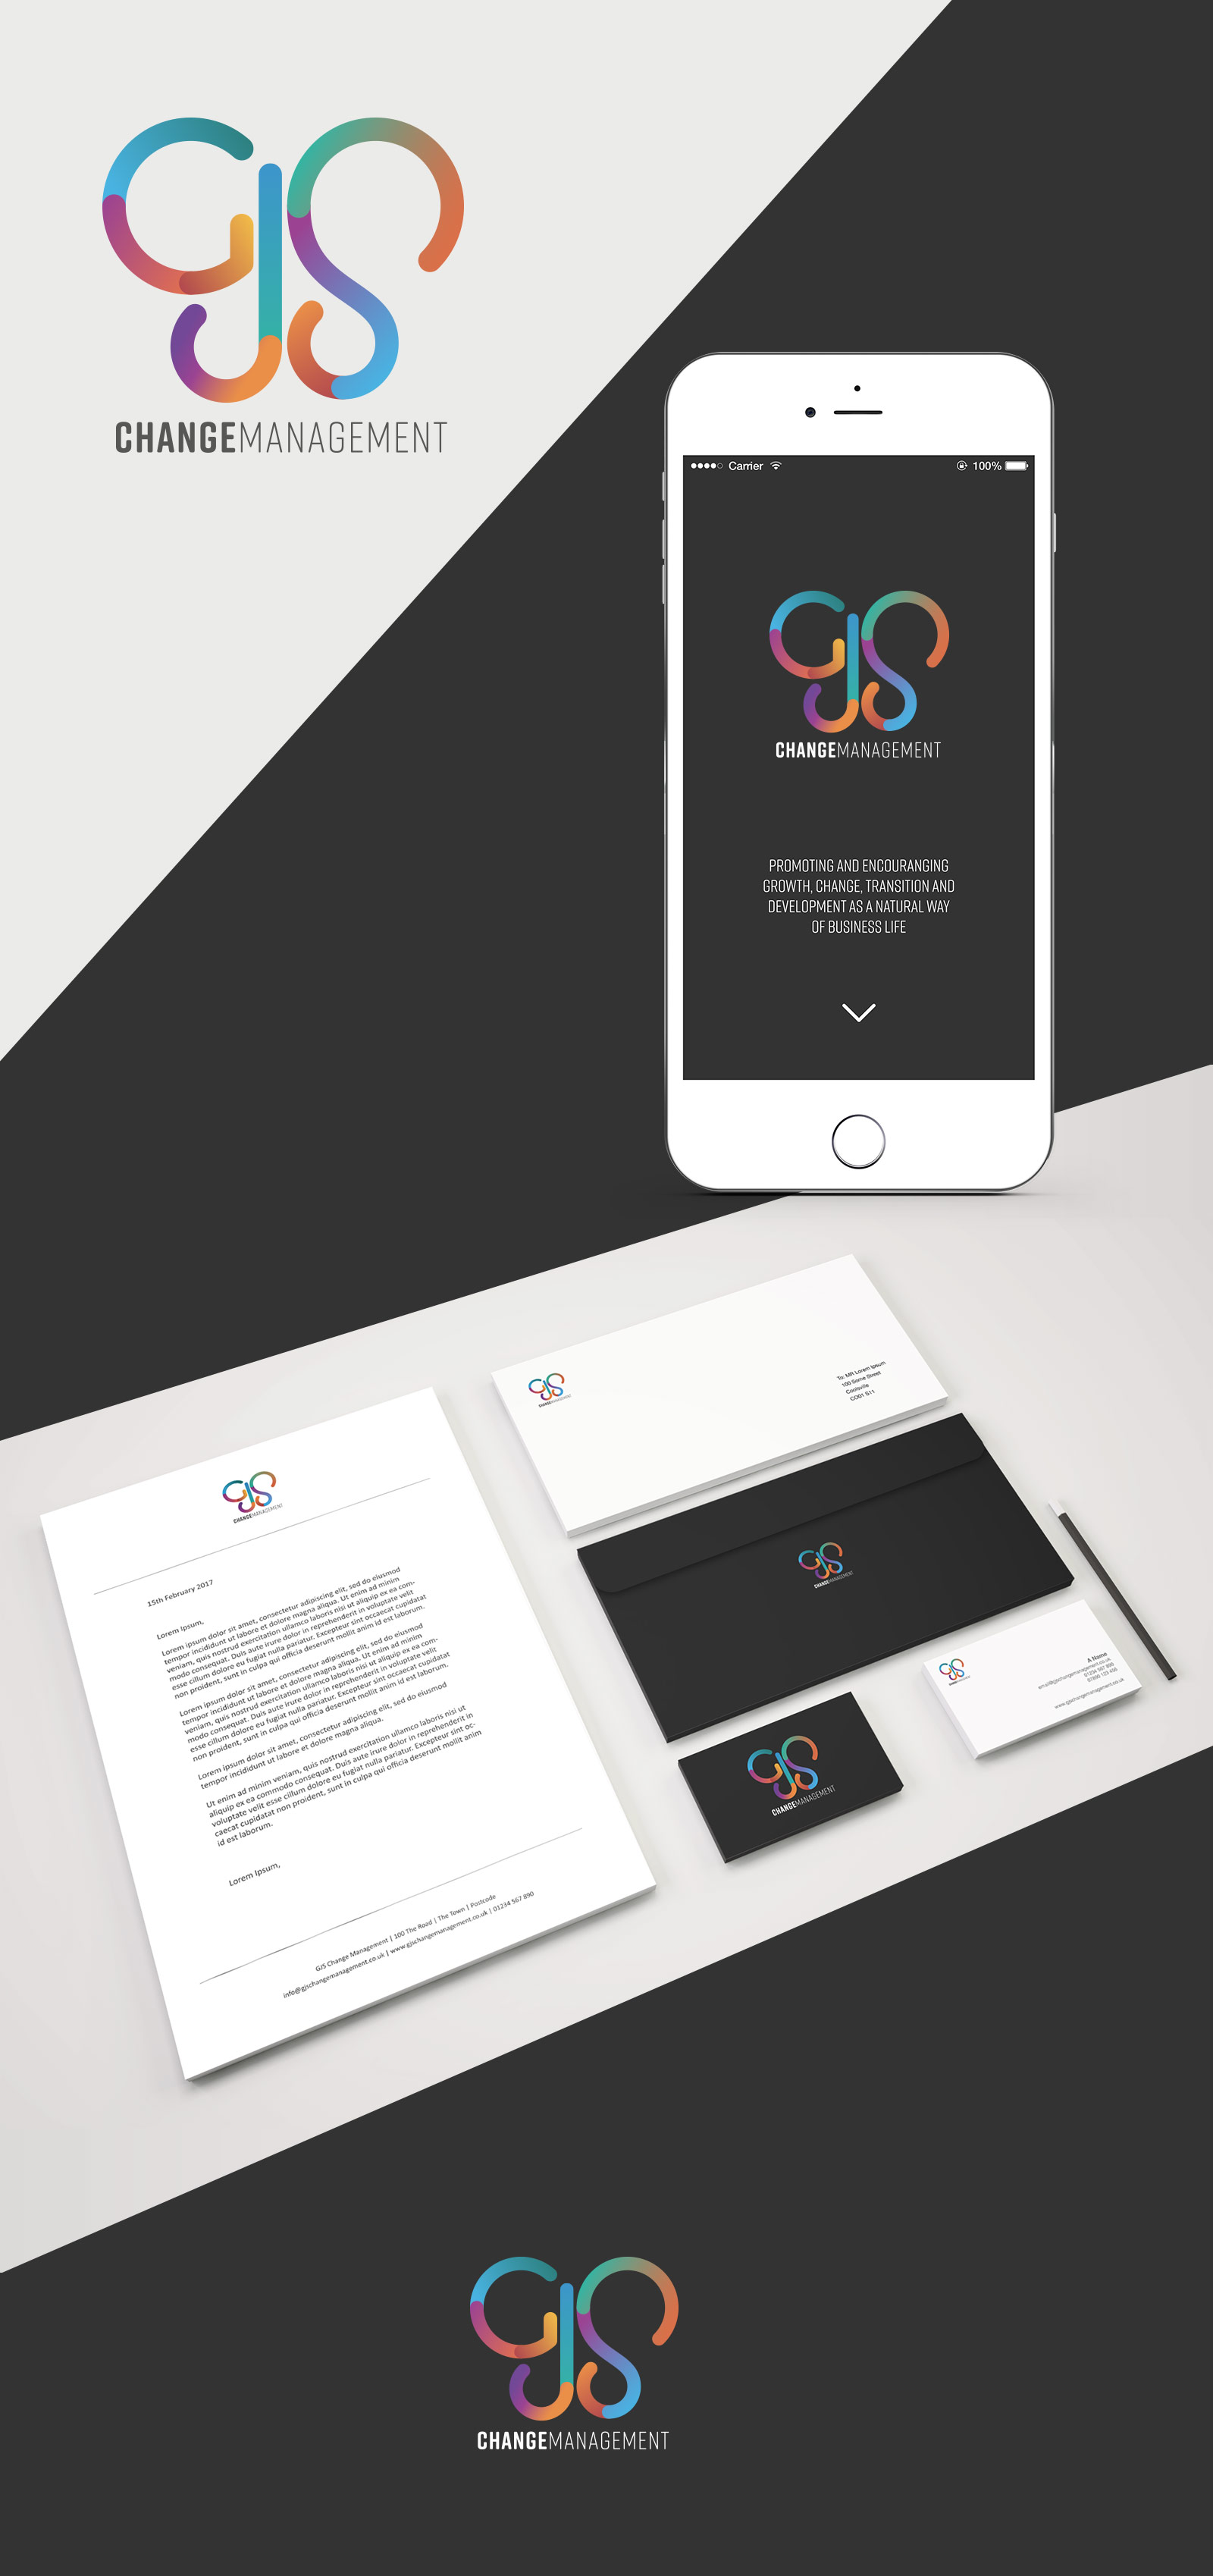 GJS Change Management Web design and branding